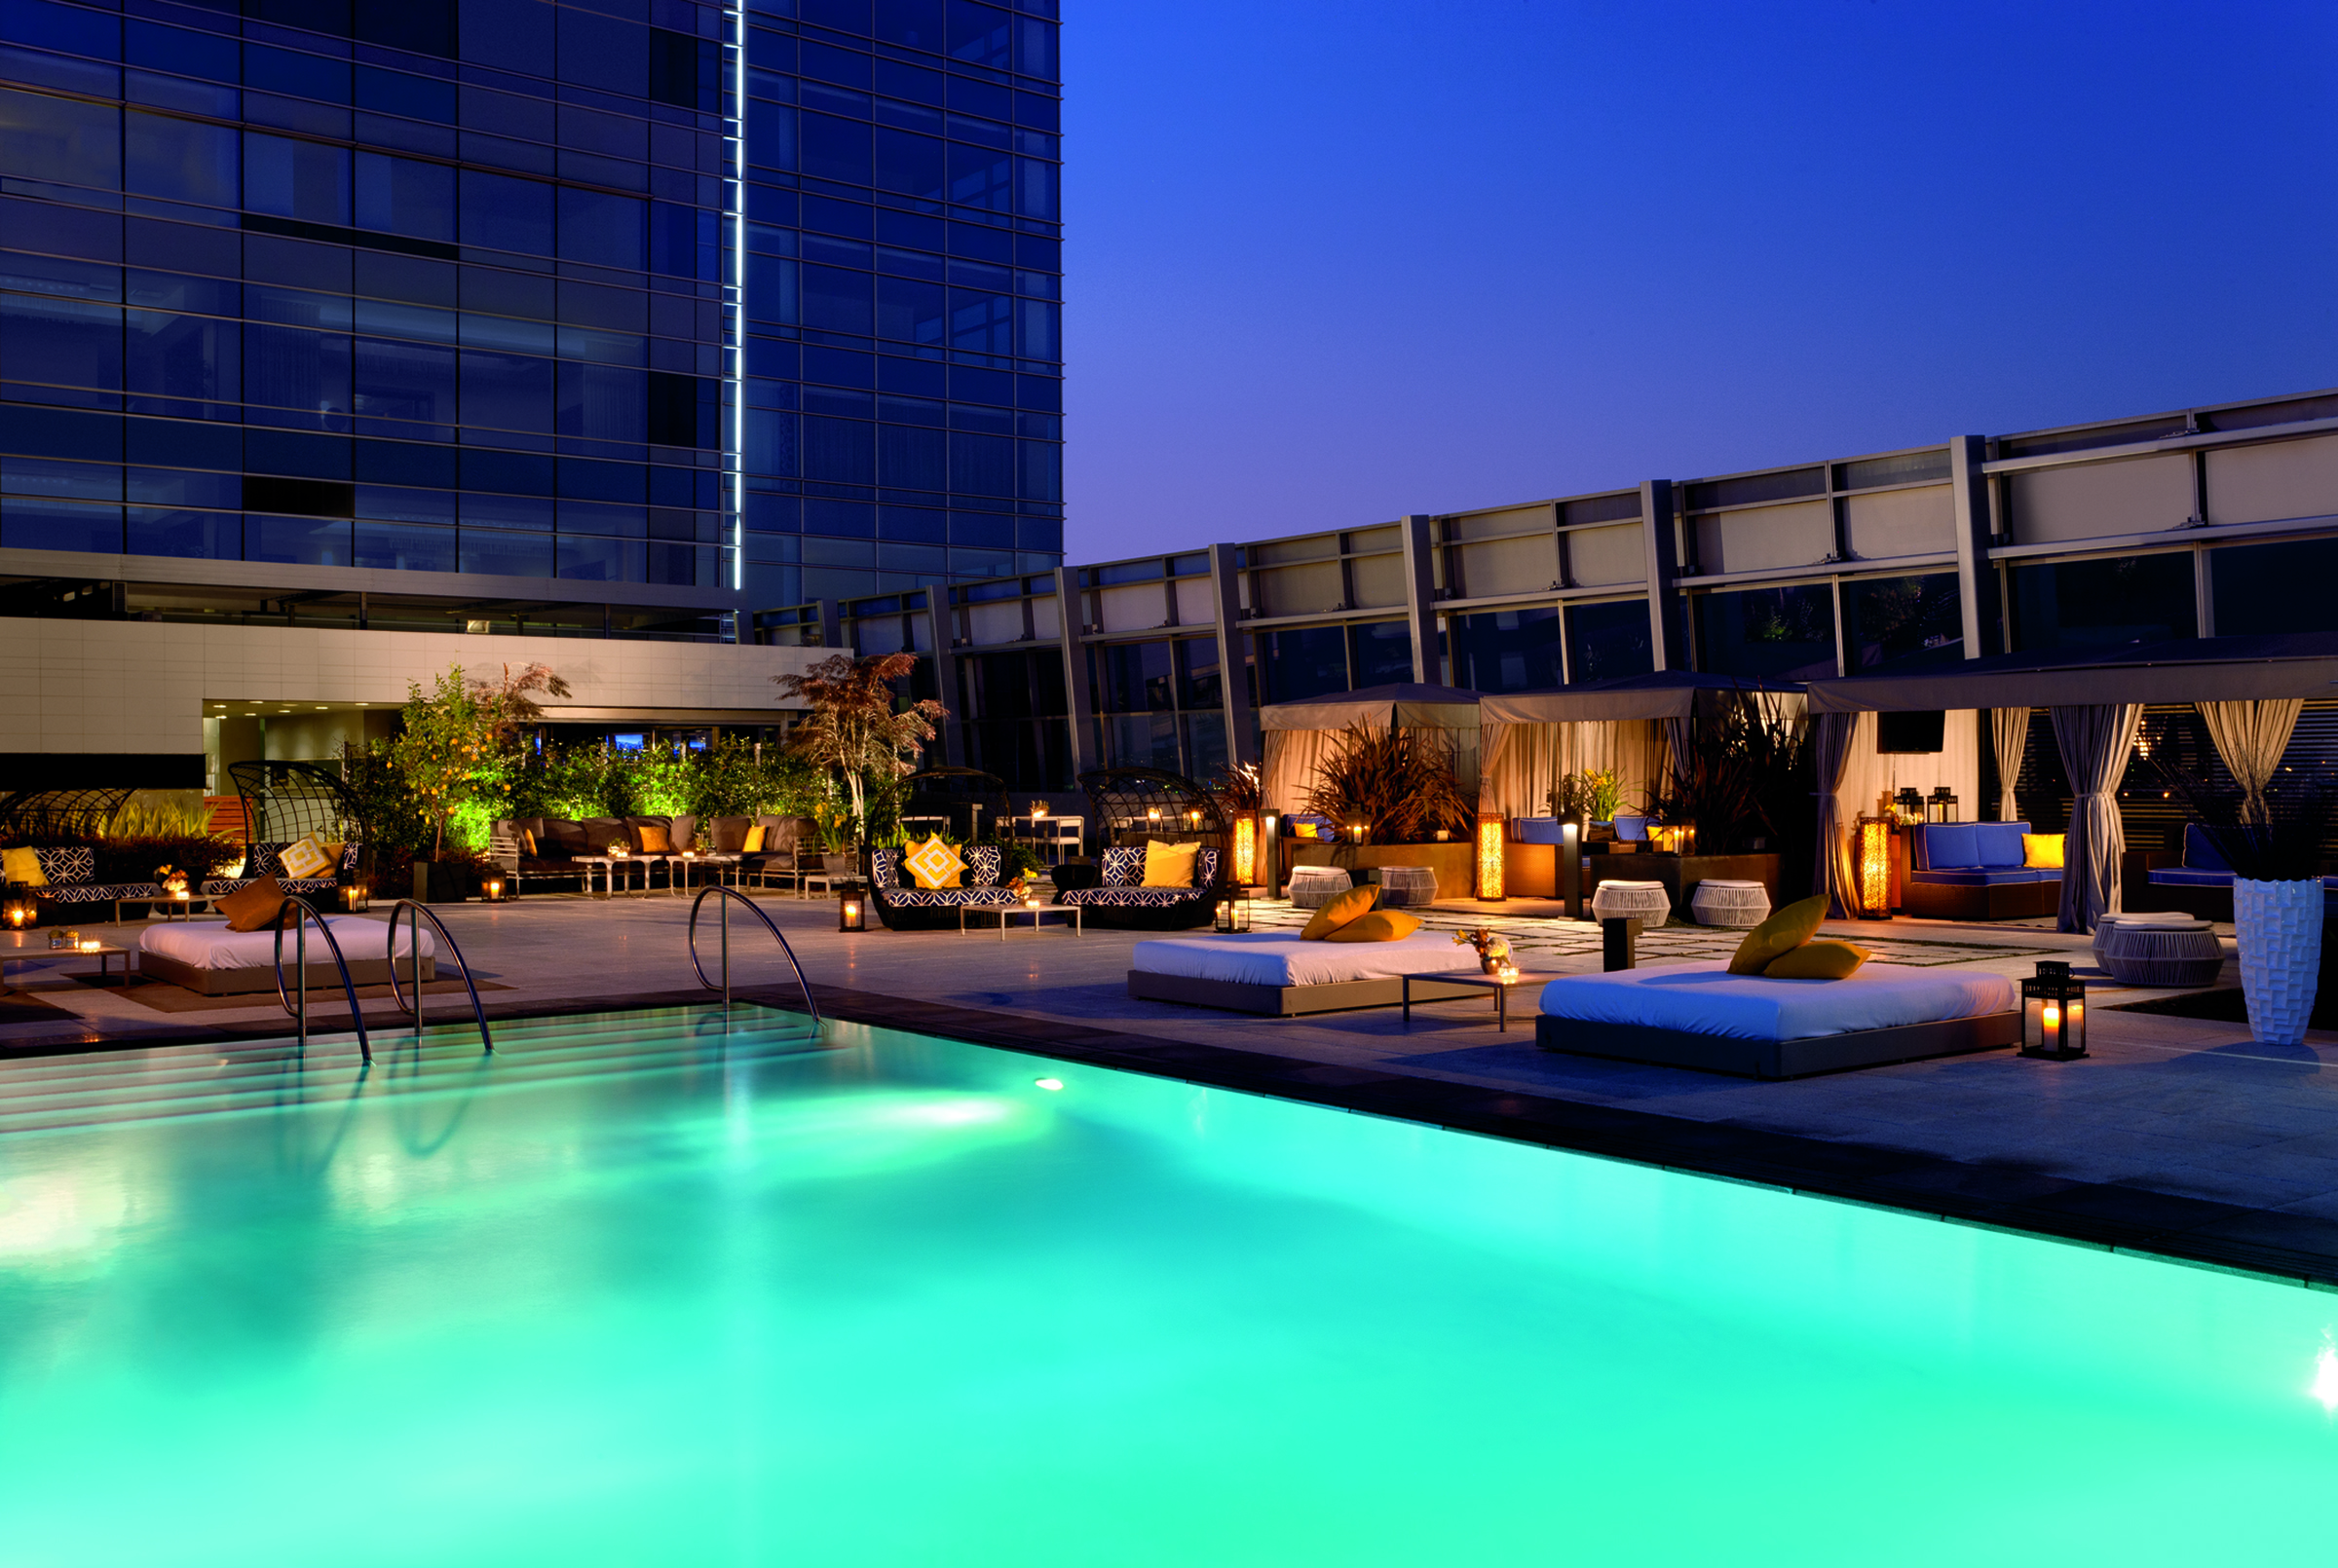 Ritz-Carlton Los Angeles California EE UU